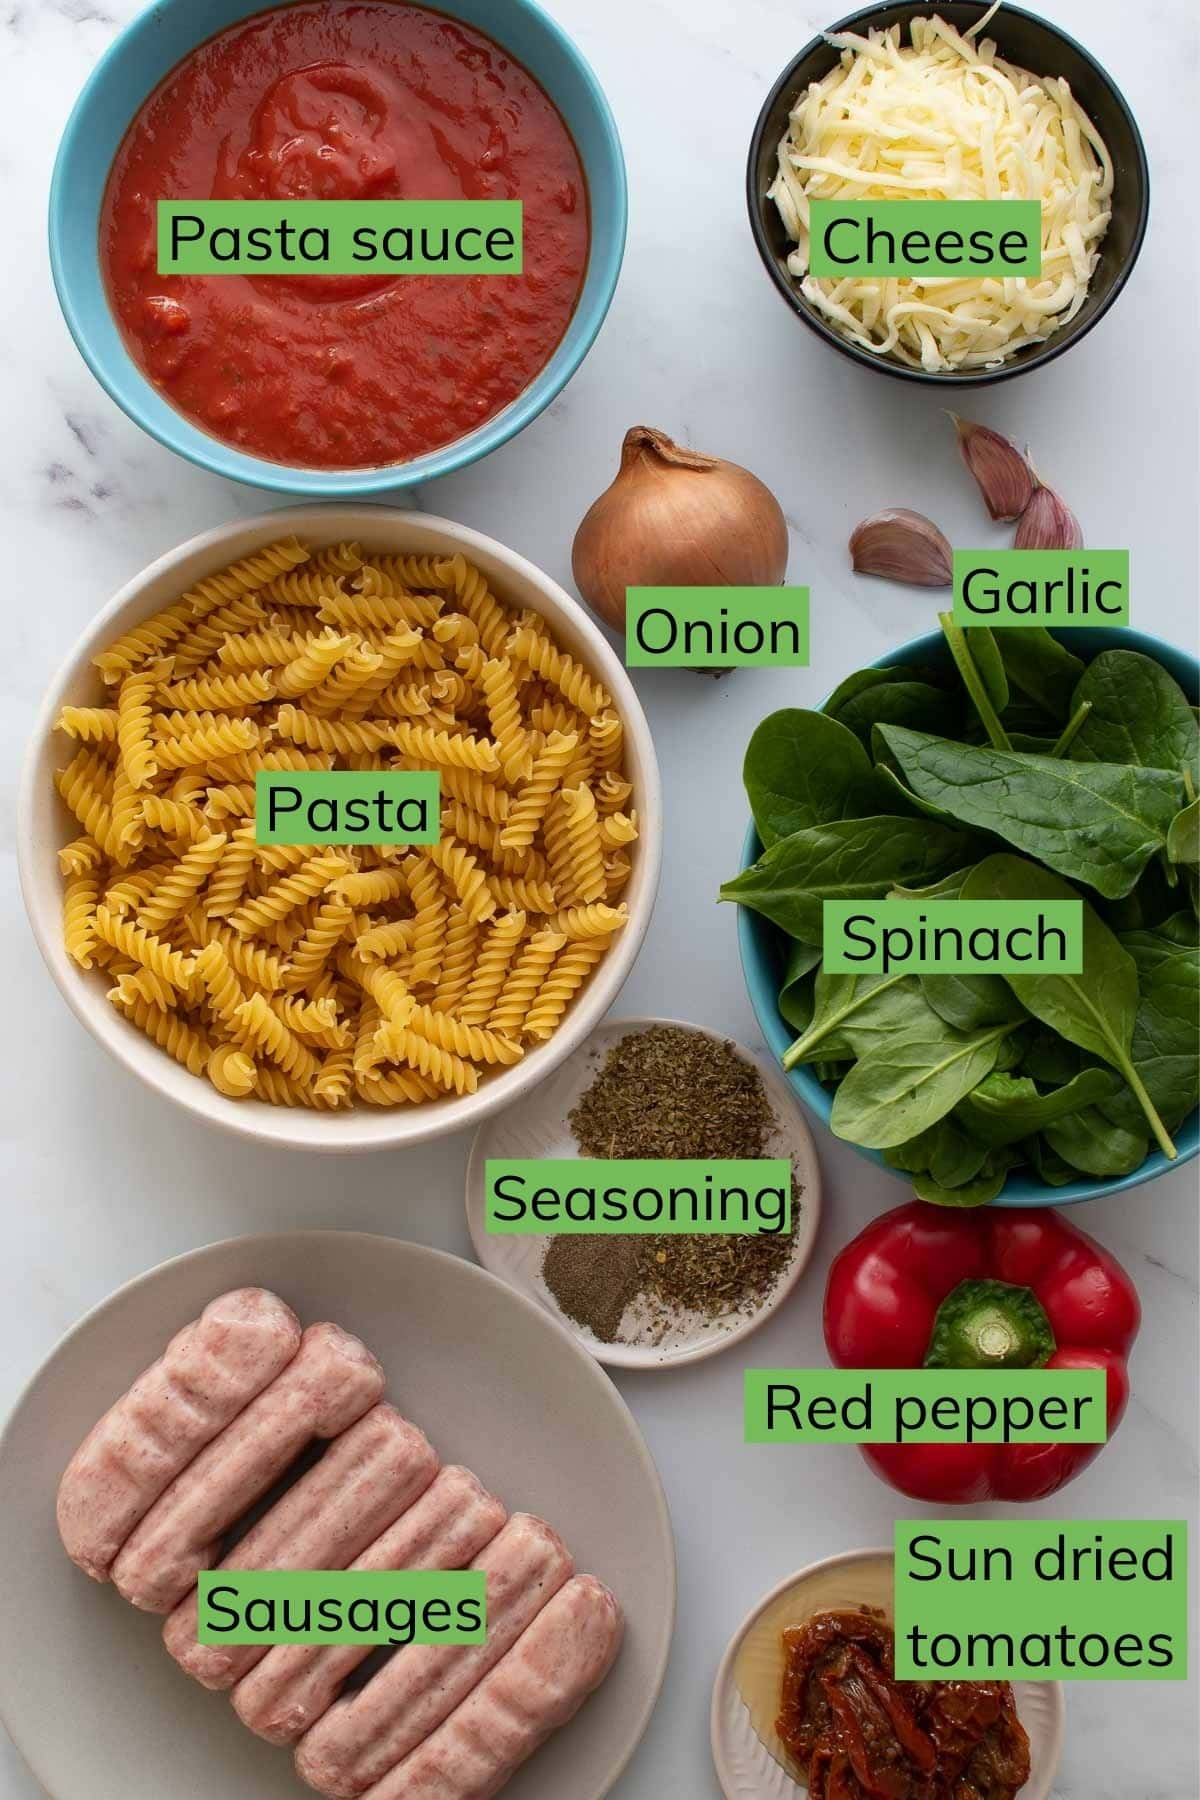 Ingredients needed to make Sausage Pasta Bake laid out on a table.